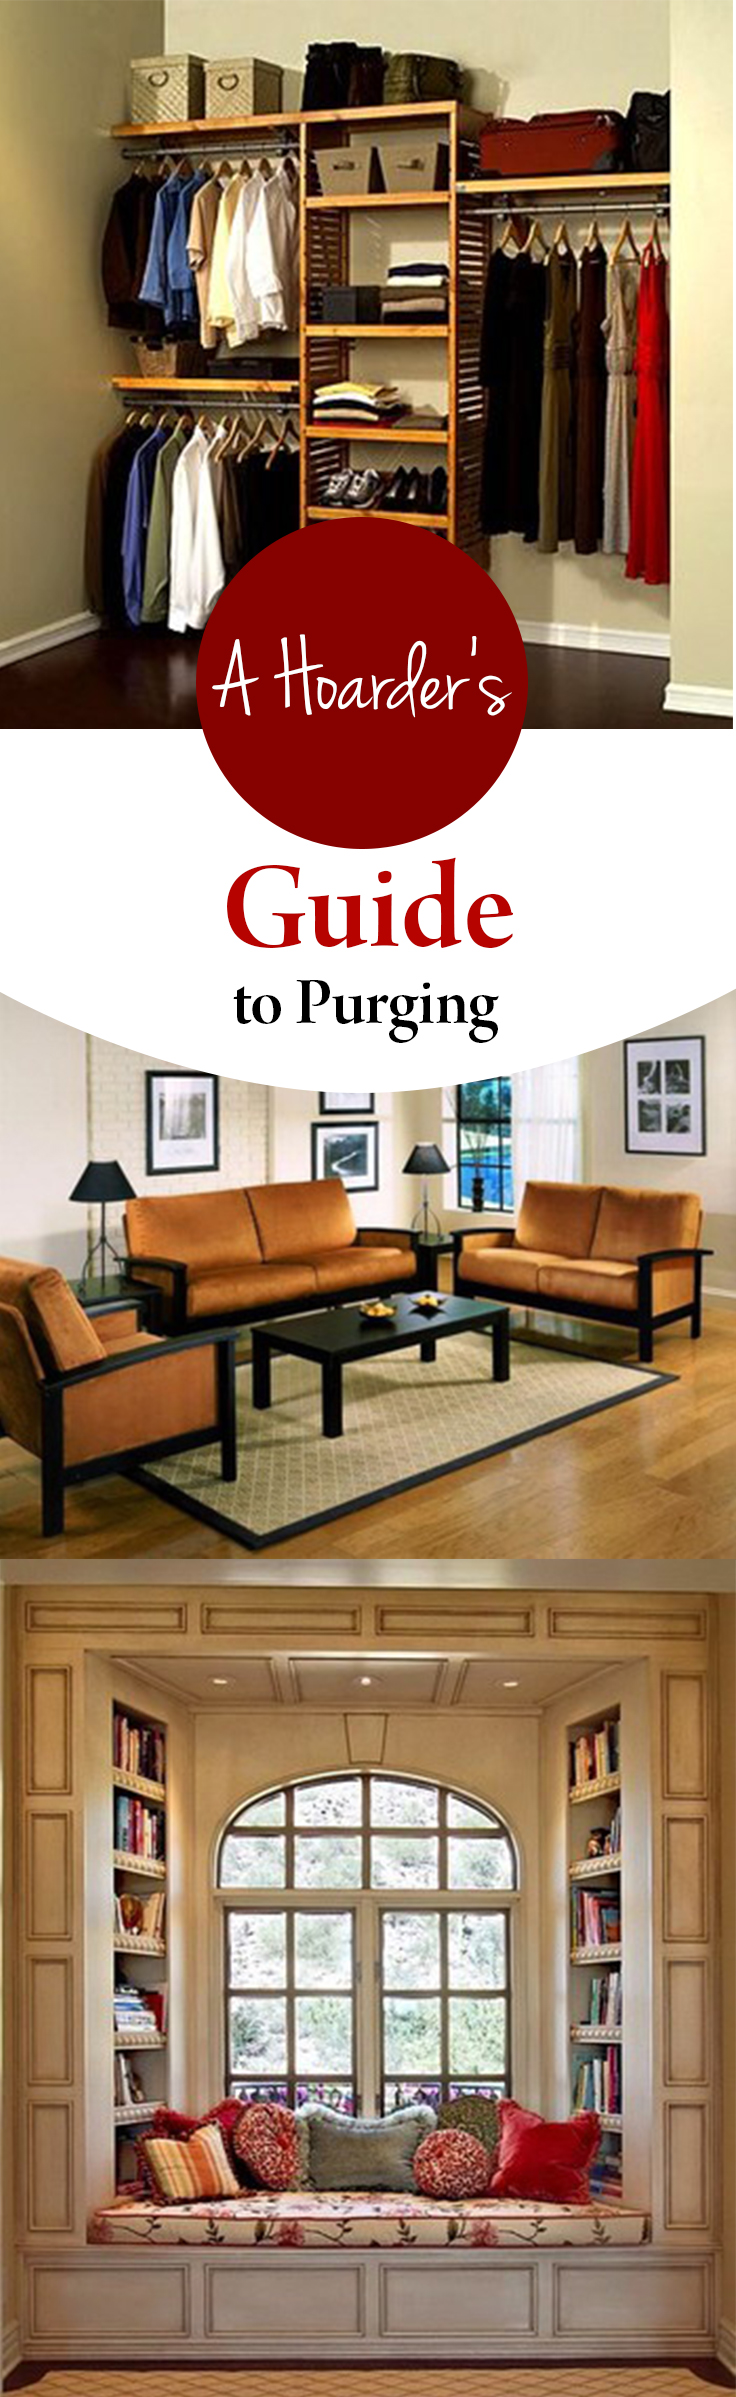 A Hoarders Guide to Purging (1)